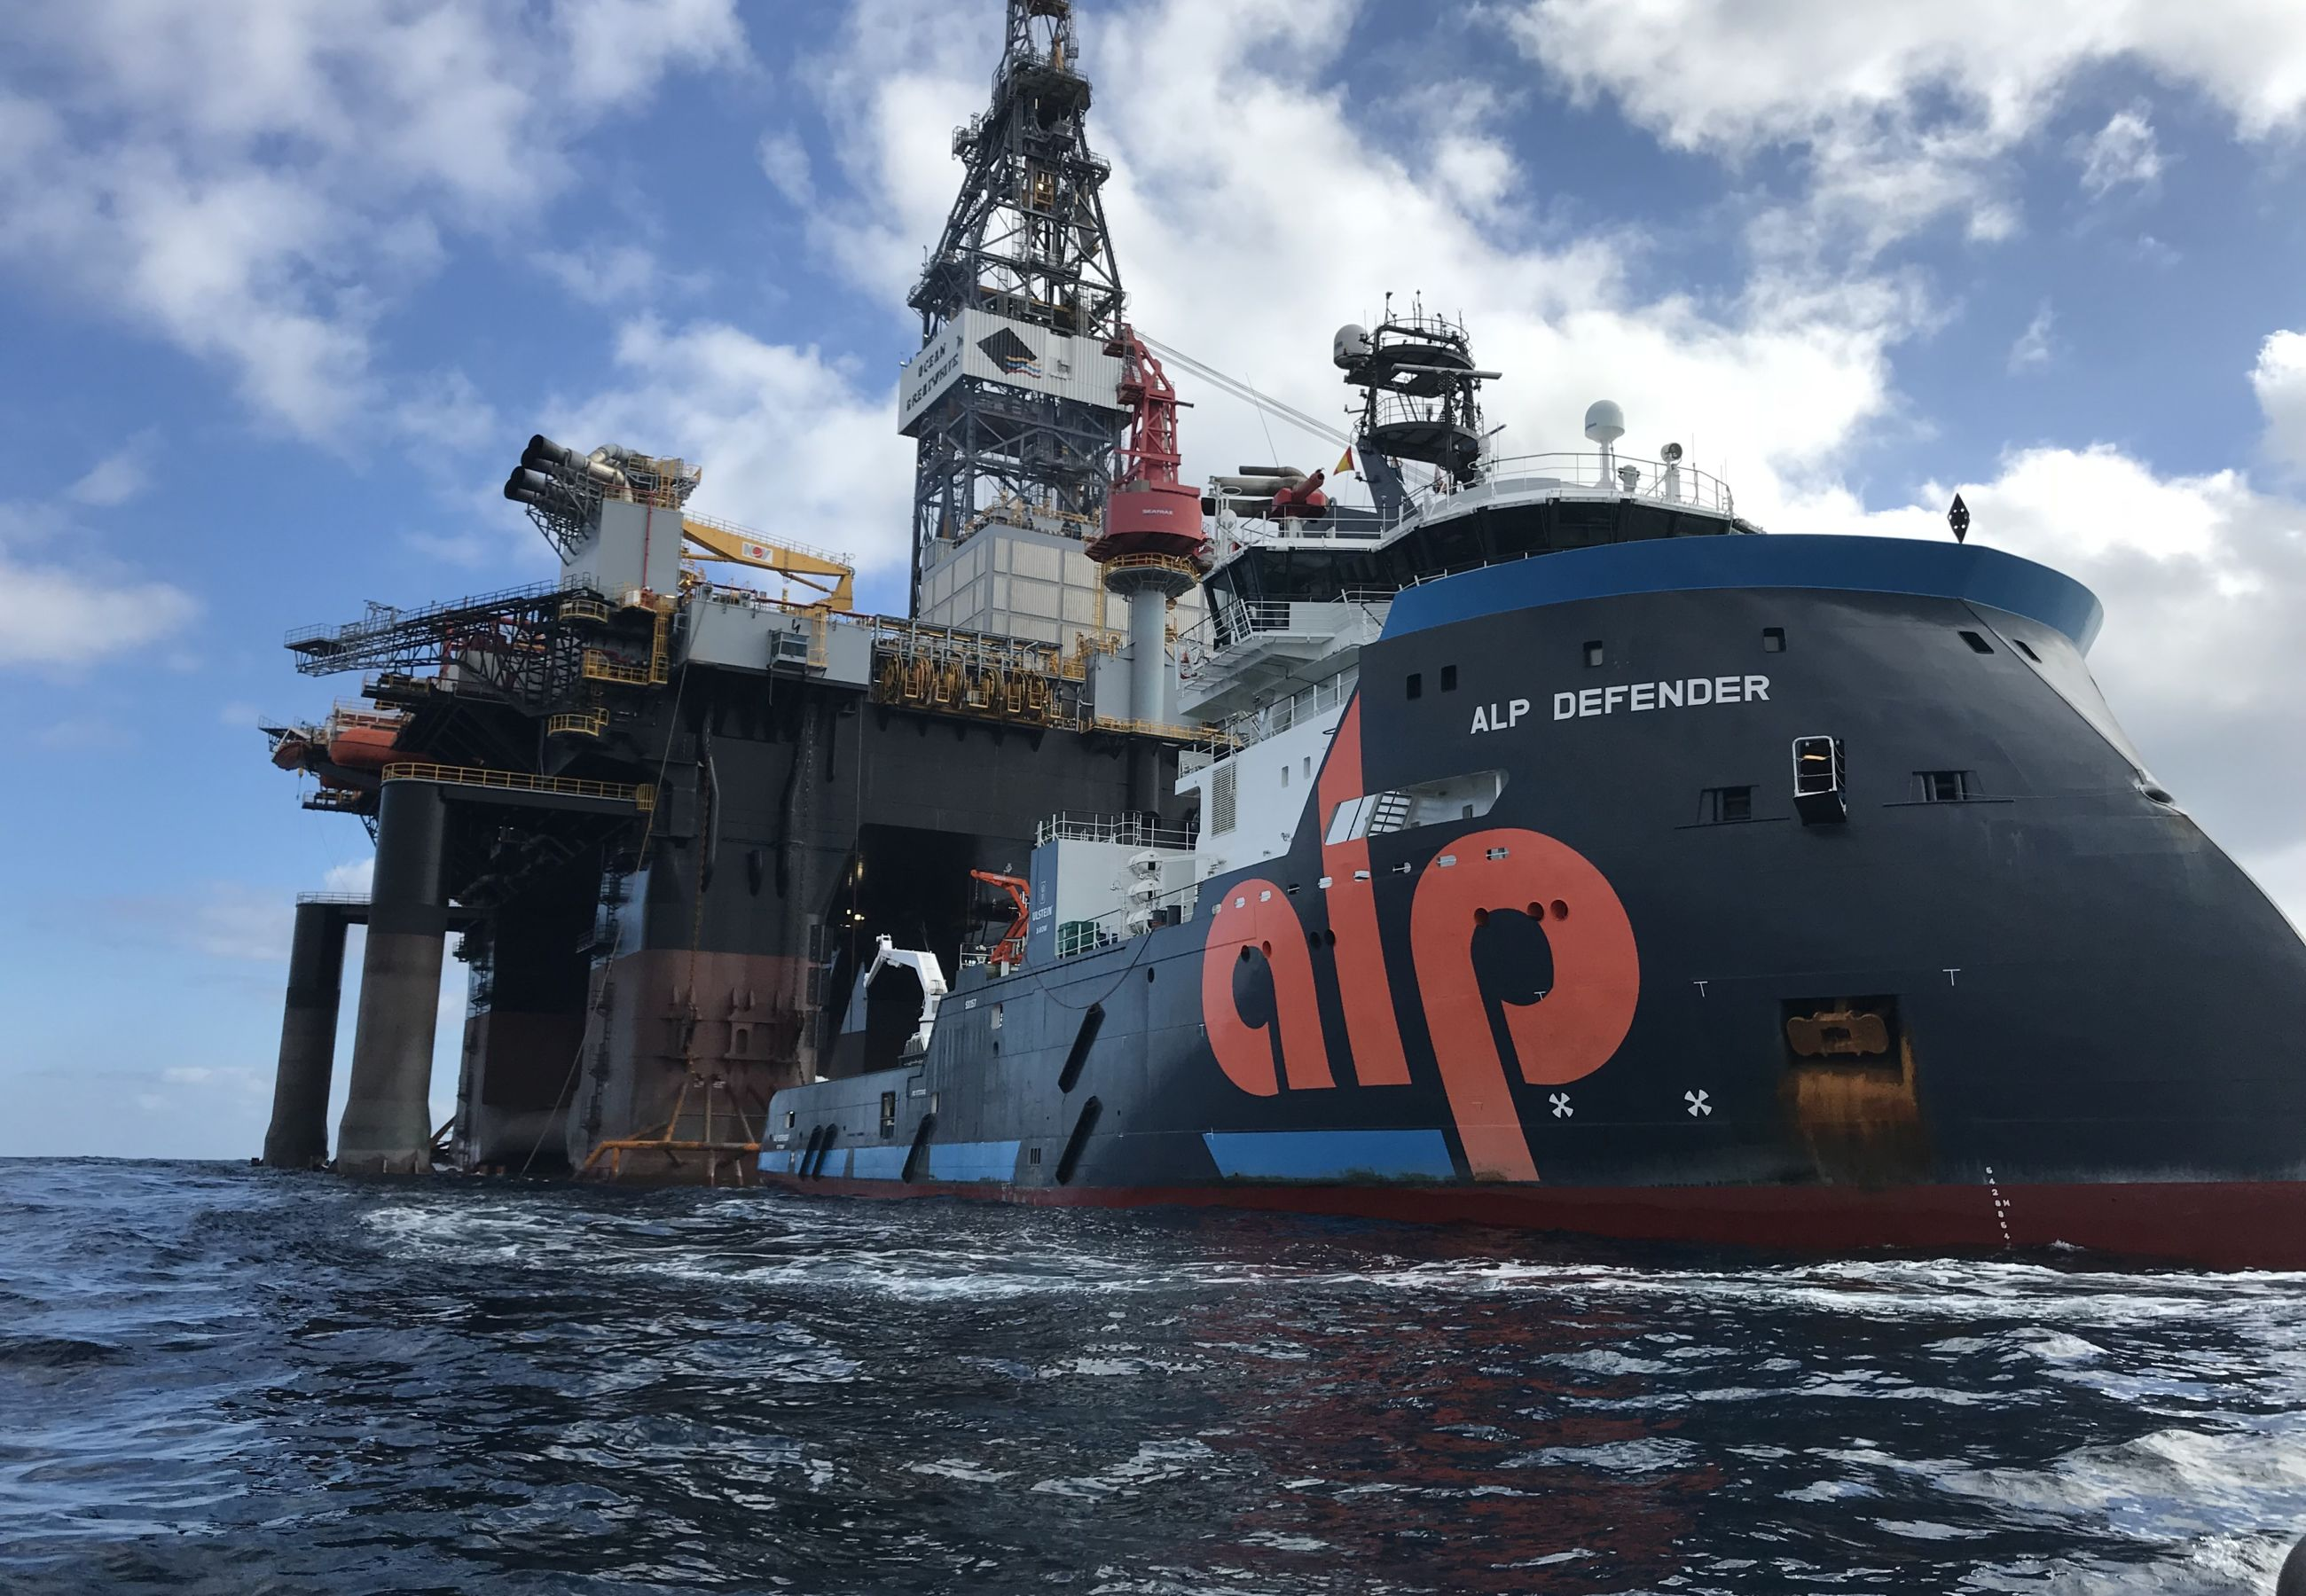 Alp Defender Ocean Great White Diamond Largest Rig